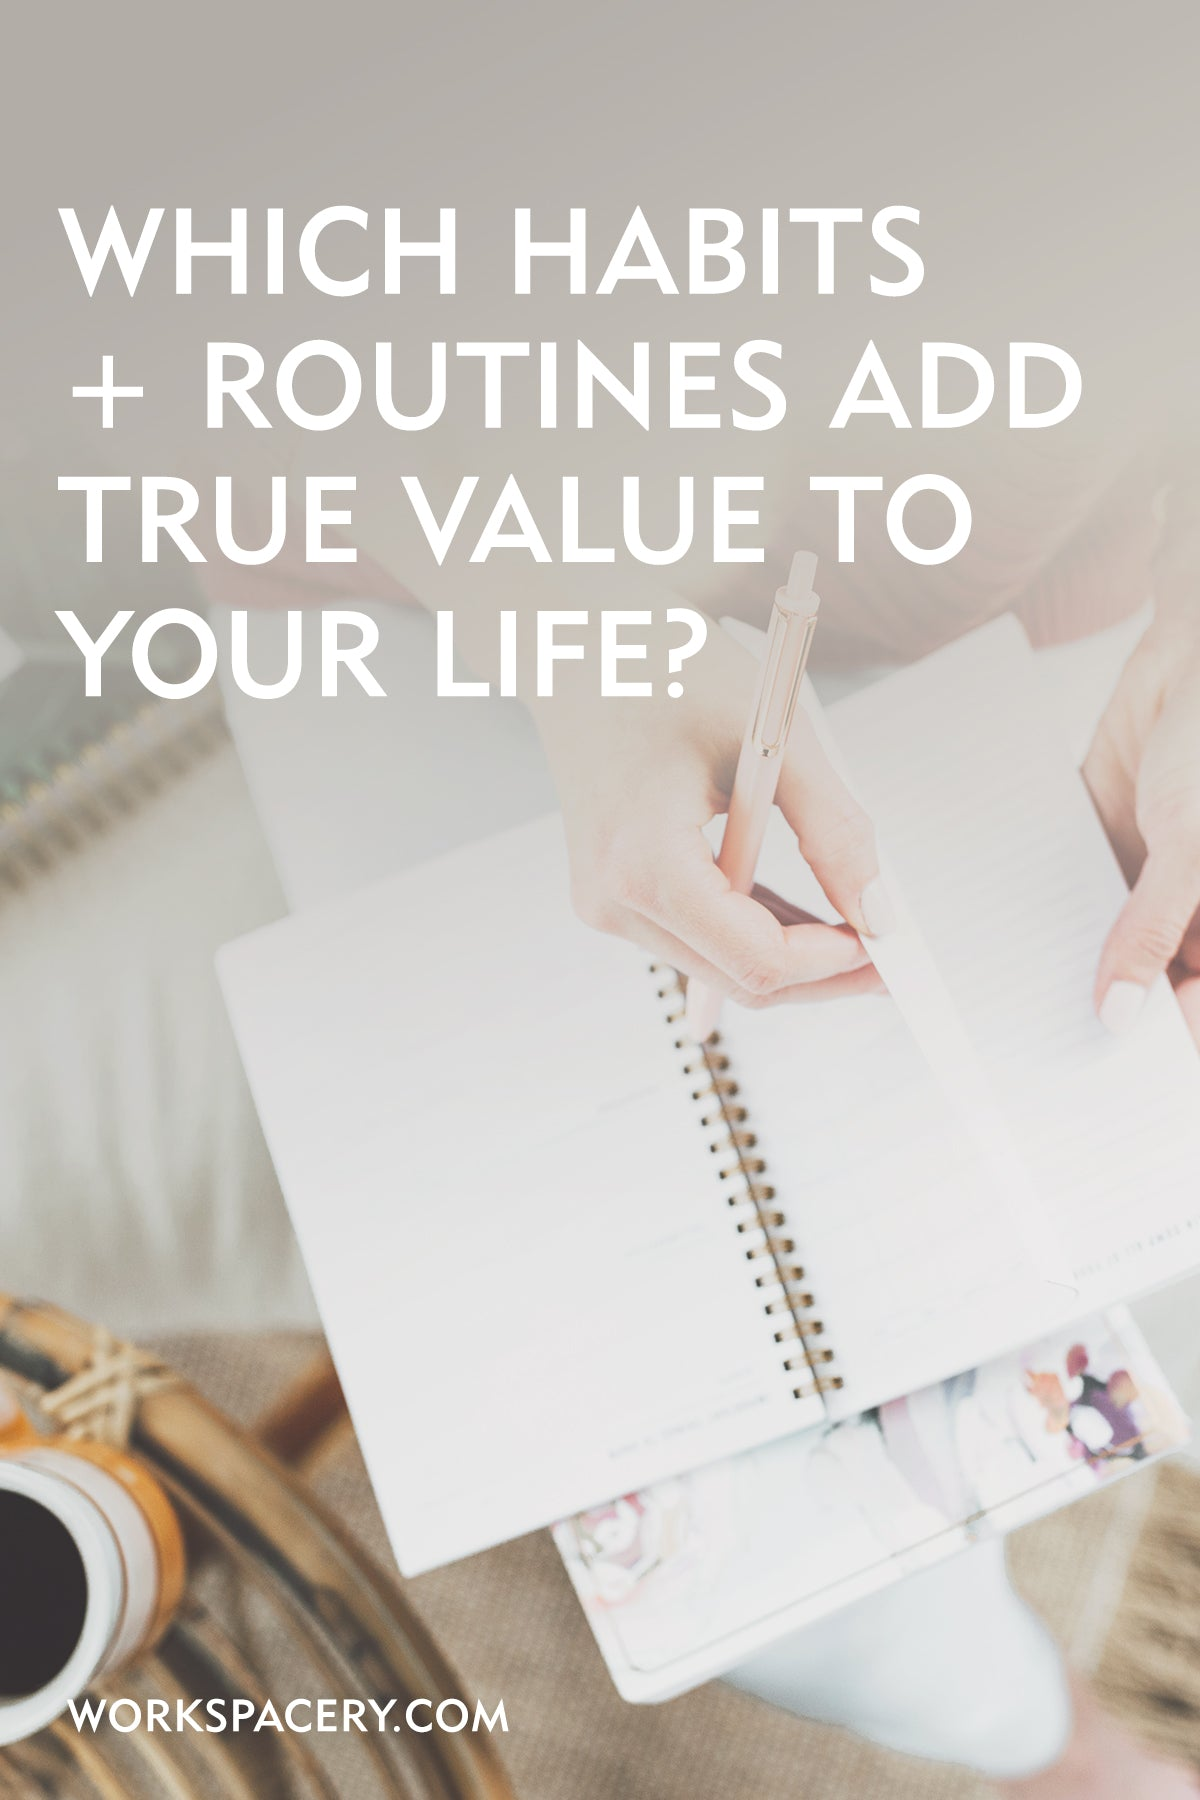 Which Habits + Routines Add True Value to Your Life?